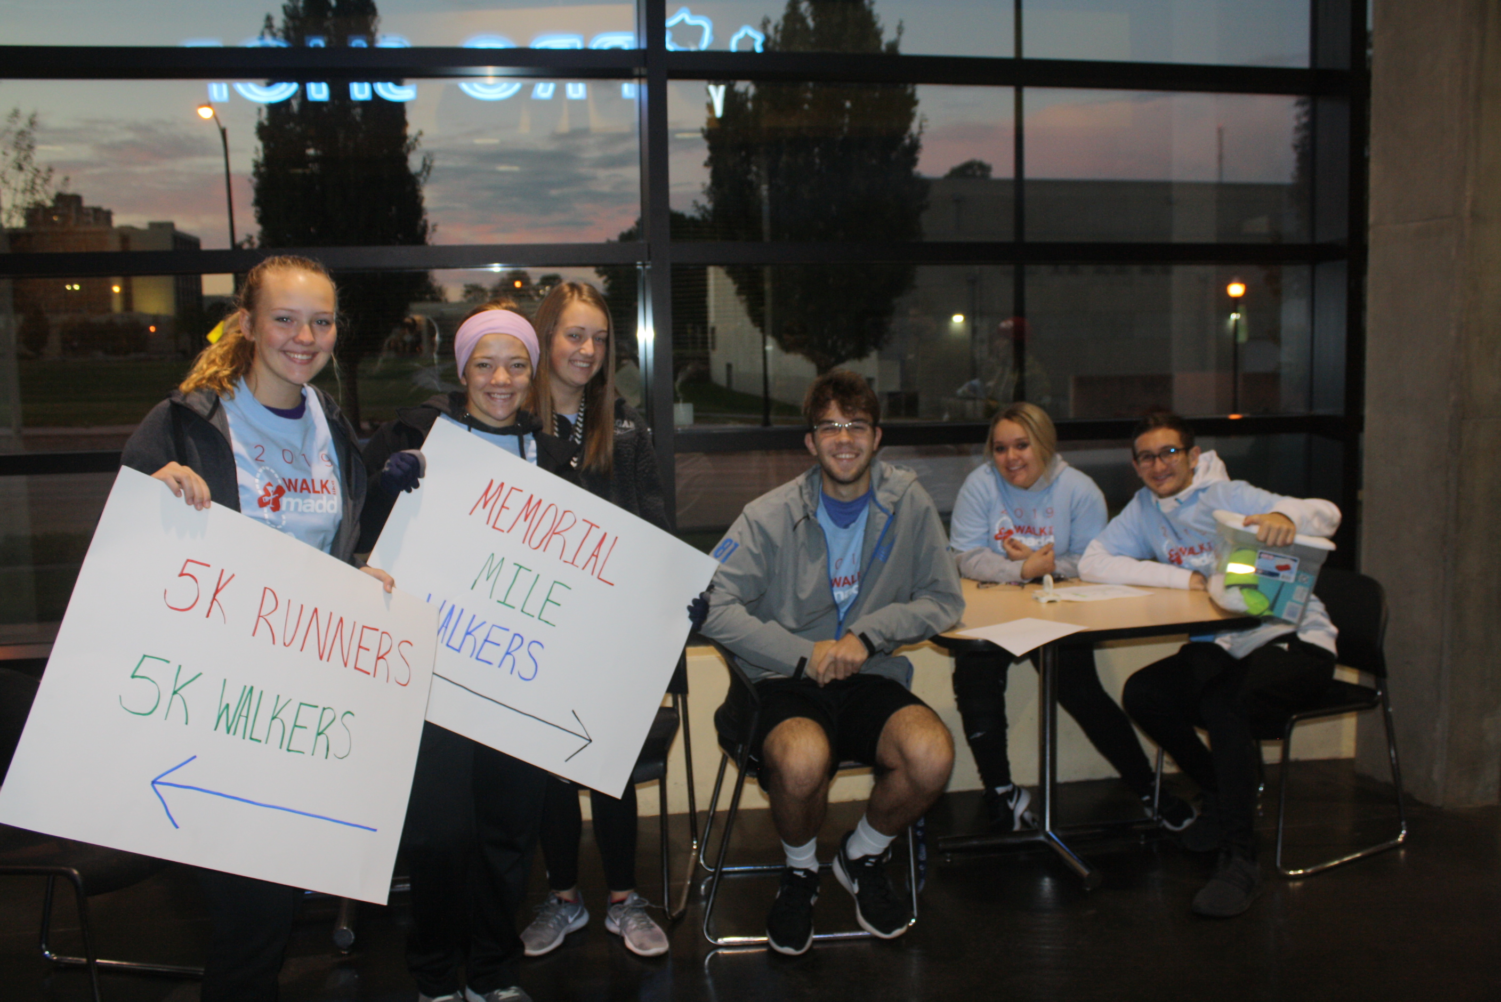 Fair Grove Students Maddie Walters, Leah Weaver, Brooke Heavin, Alex Ince, Haylee Wingo, and Eli Edwards helping at the MADD run